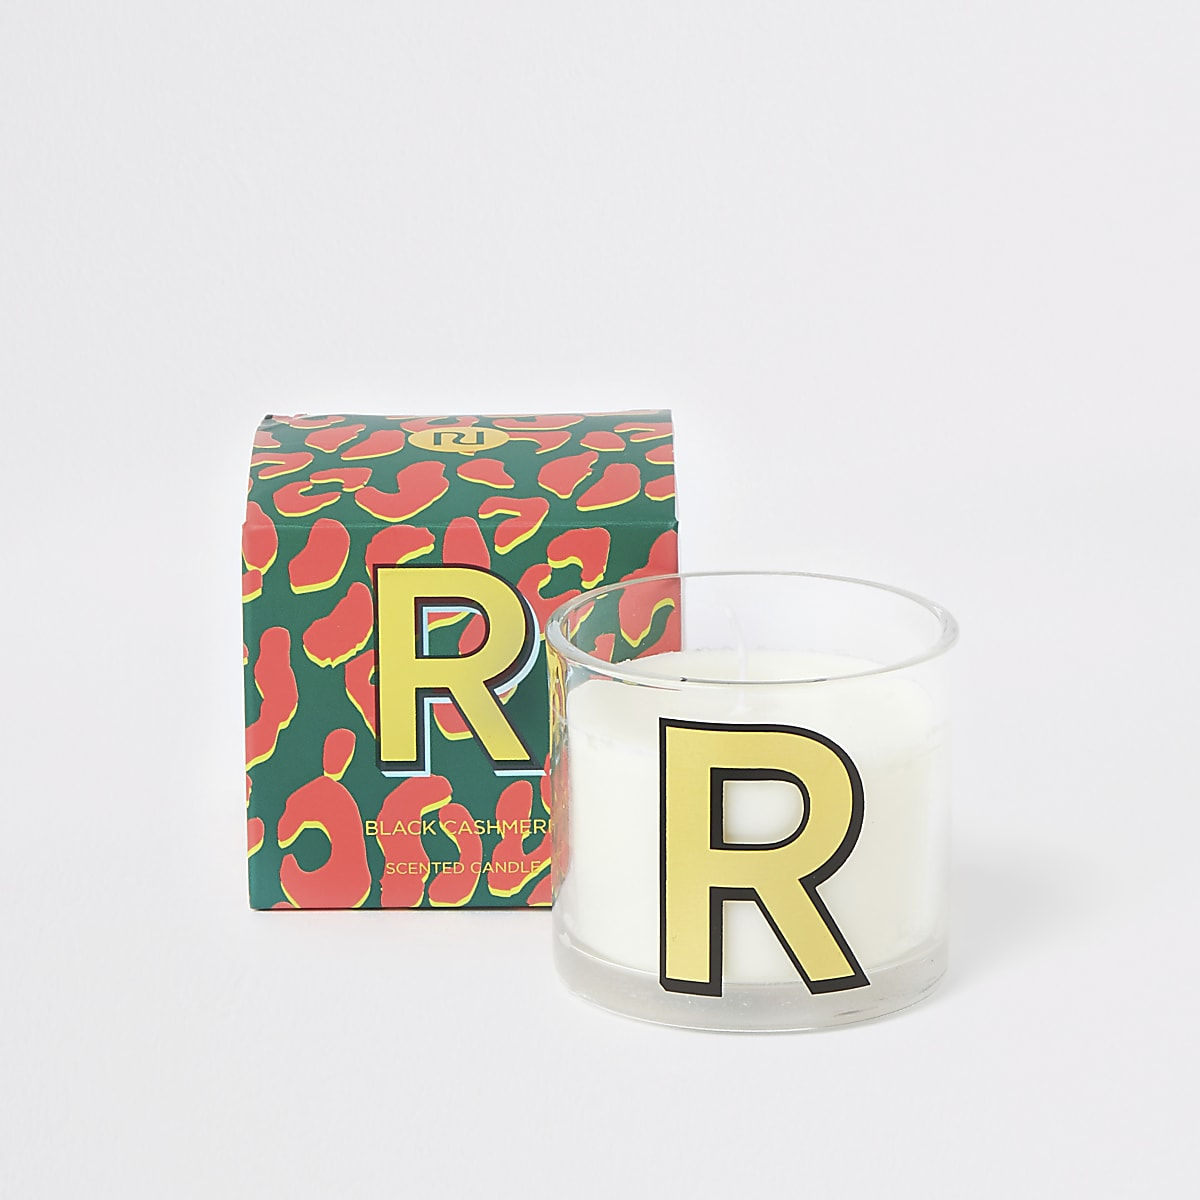 Red printed 'R' black cashmere candle